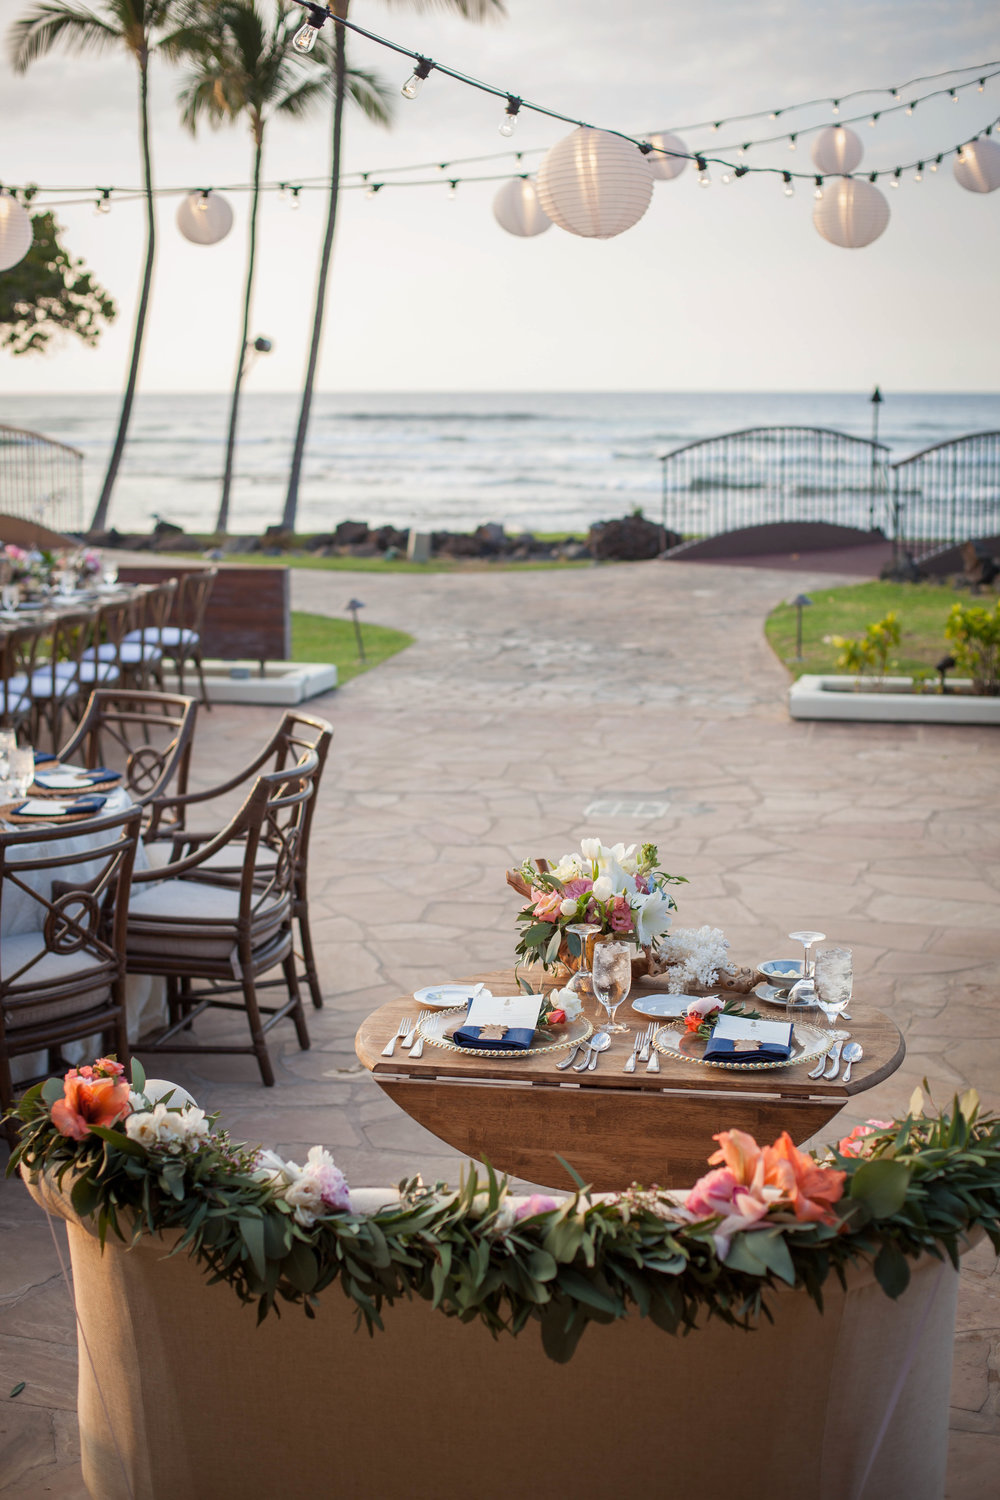 big island hawaii mauna lani resort wedding © kelilina photography 20160131174222-1.jpg